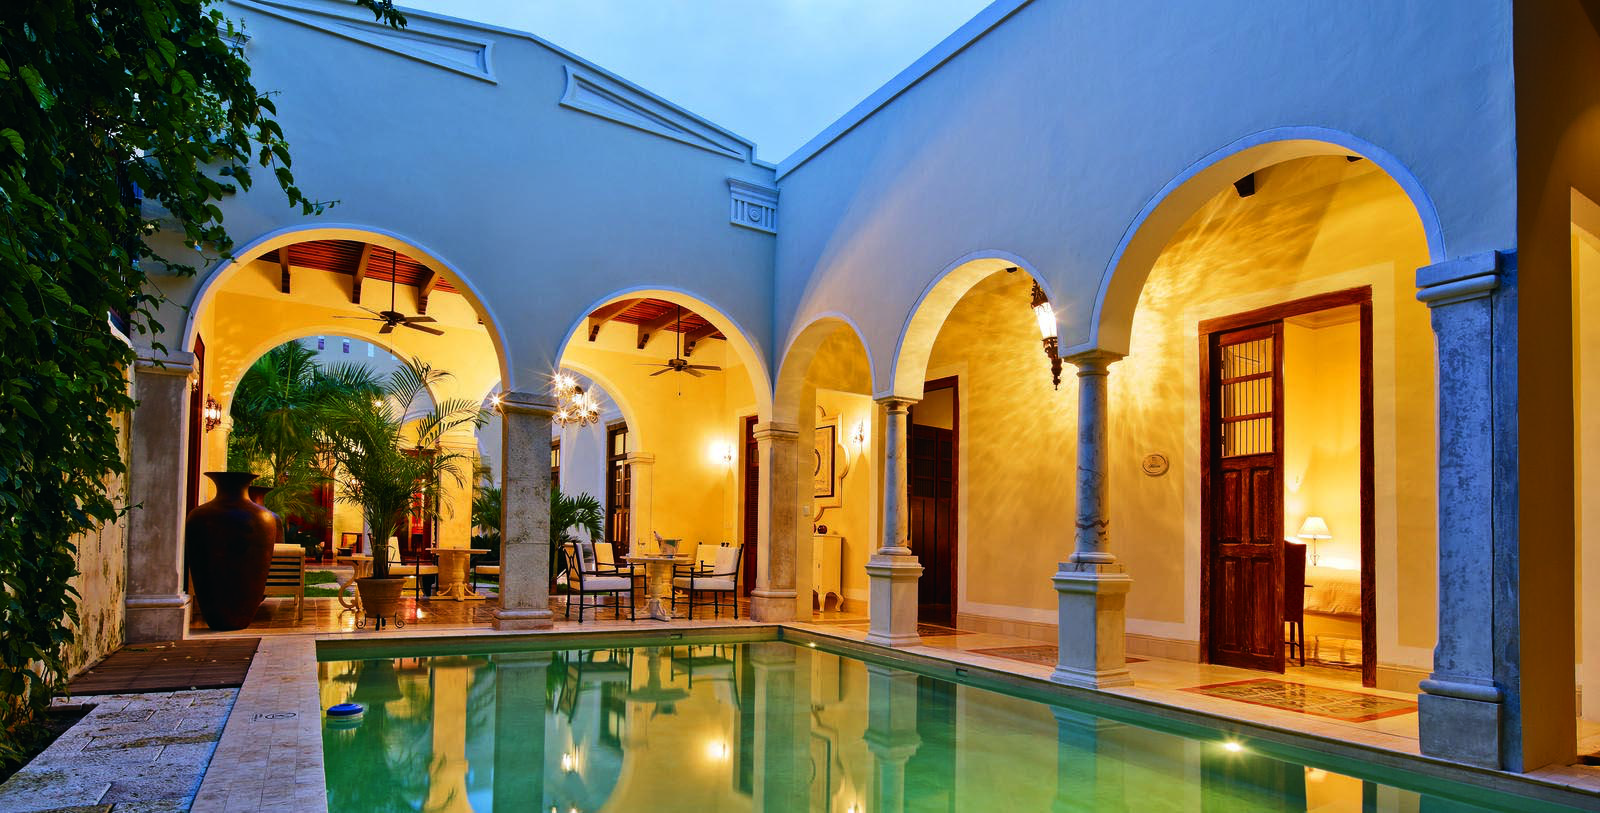 Image of outdoor pool area at night Casa Lecanda, 1900s, Member of Historic Hotels Worldwide, in Merida, Mexico, Hot Deals